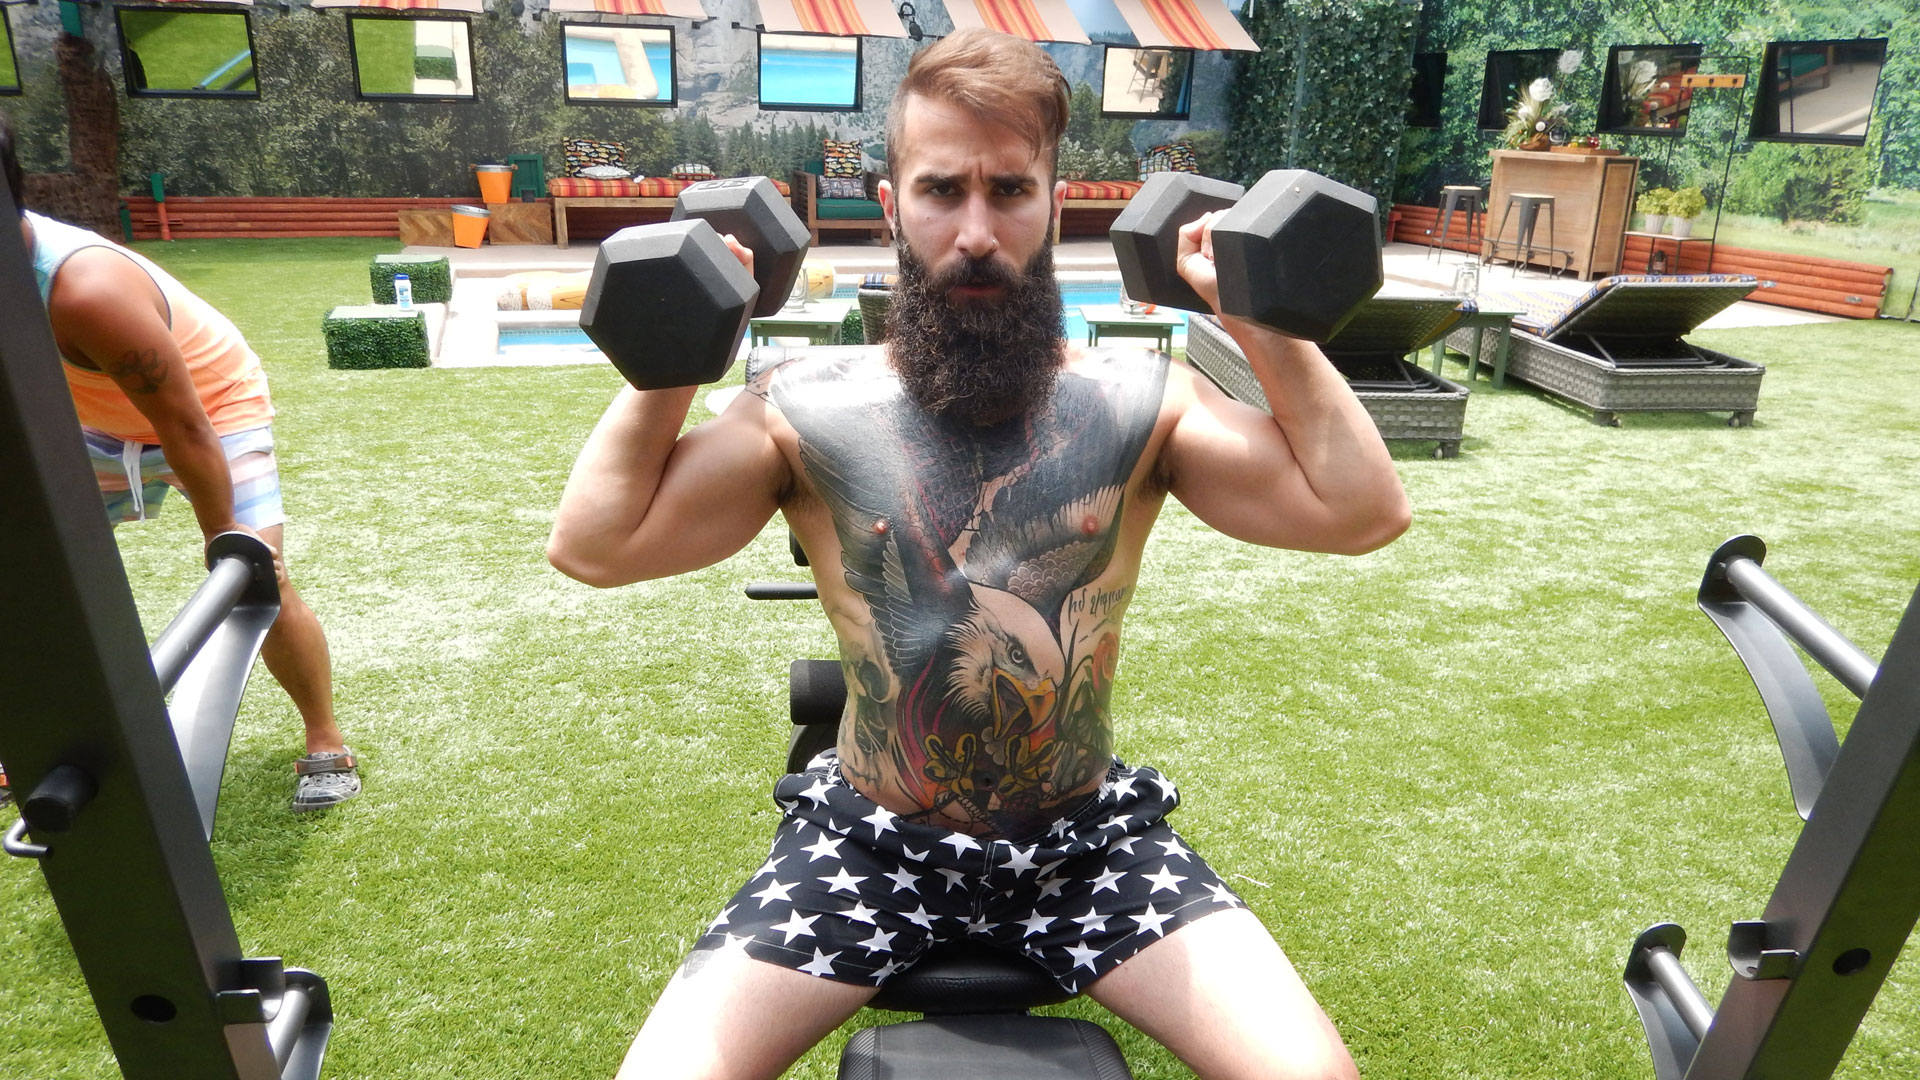 Paul pumps iron to work out his upper body.